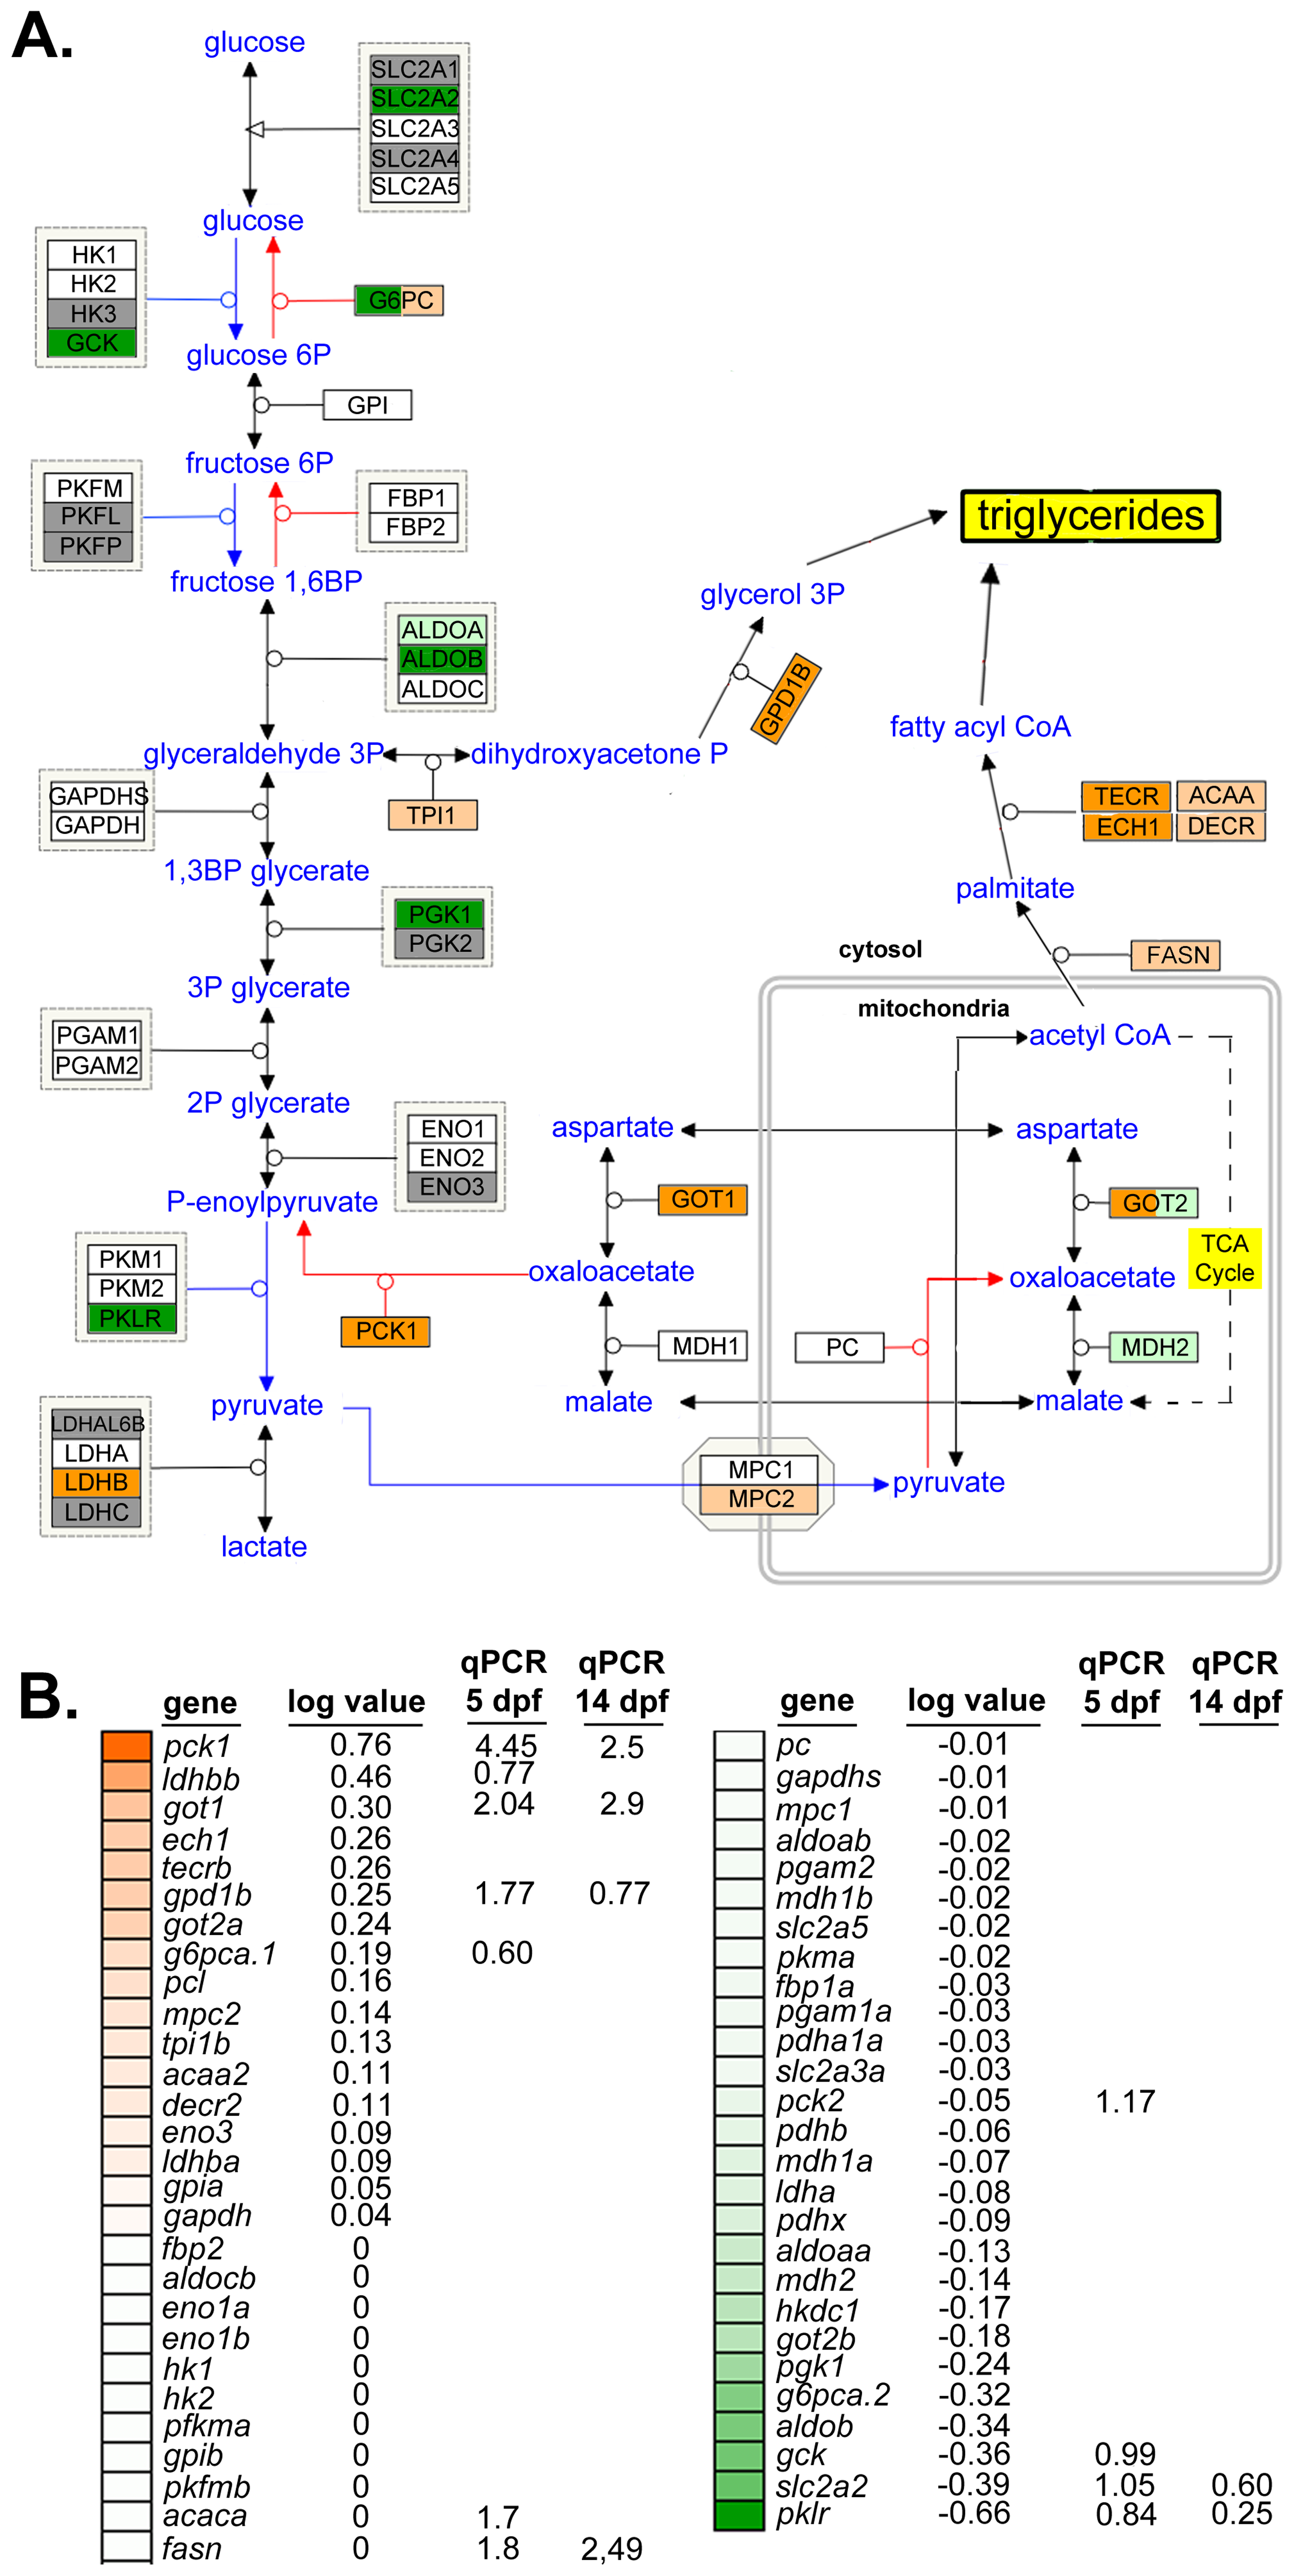 Glyceroneogenesis and fatty acid elongation pathways are dysregulated by nAtf6 overexpression.